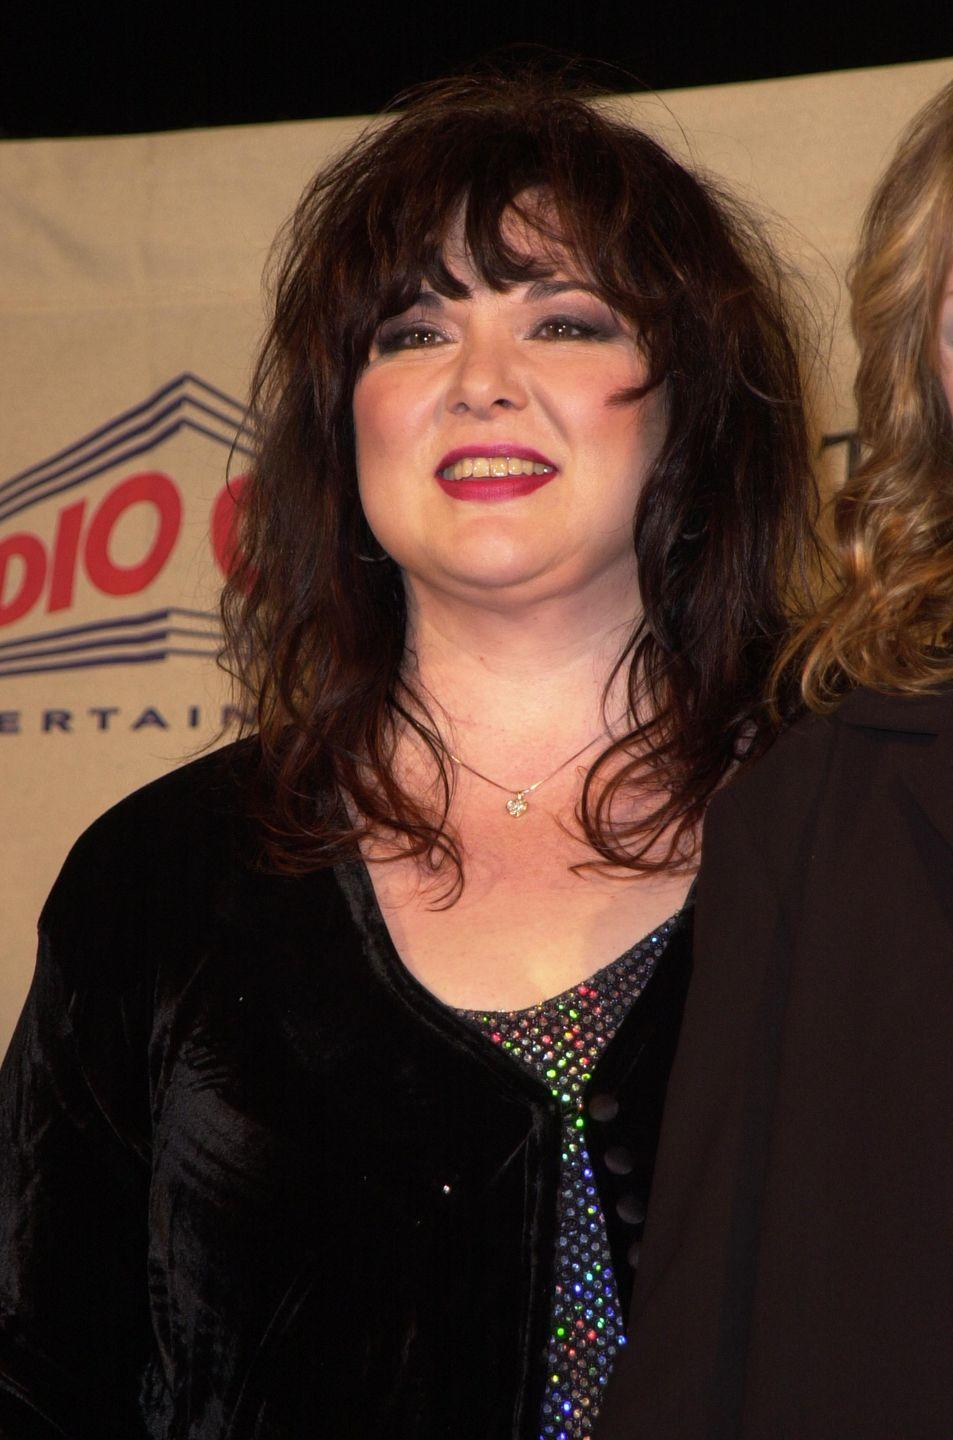 """<p>As one part of the band Heart, Ann struggled with her weight and meeting those expectations. """"All through the years, when people thought that I was not a thin, but a normal looking person, I was fasting. A lot,"""" she told <a href=""""https://www.cbsnews.com/news/taking-heart-in-new-surgery/"""" rel=""""nofollow noopener"""" target=""""_blank"""" data-ylk=""""slk:CBS News"""" class=""""link rapid-noclick-resp"""">CBS News</a>. When she started eating more, she put on more weight. In 2002, Ann got lap band surgery, which was relatively new at that time.</p>"""